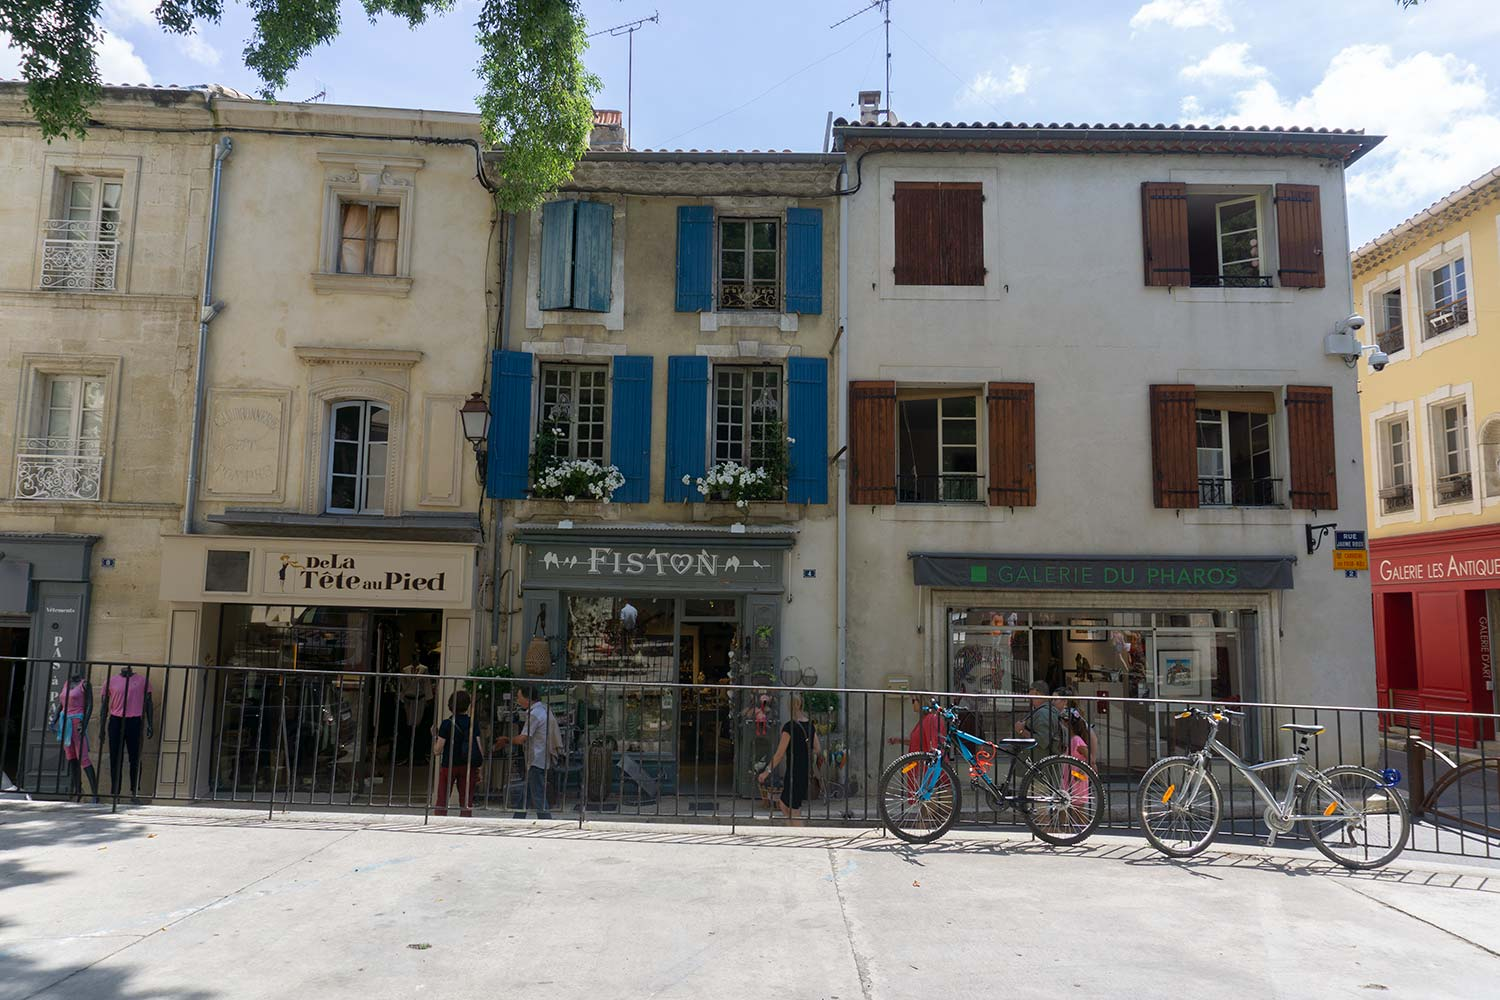 A plaza in Saint-Remy surrounded by buildings with colorful shutters. Two bikes are resting against a railing.